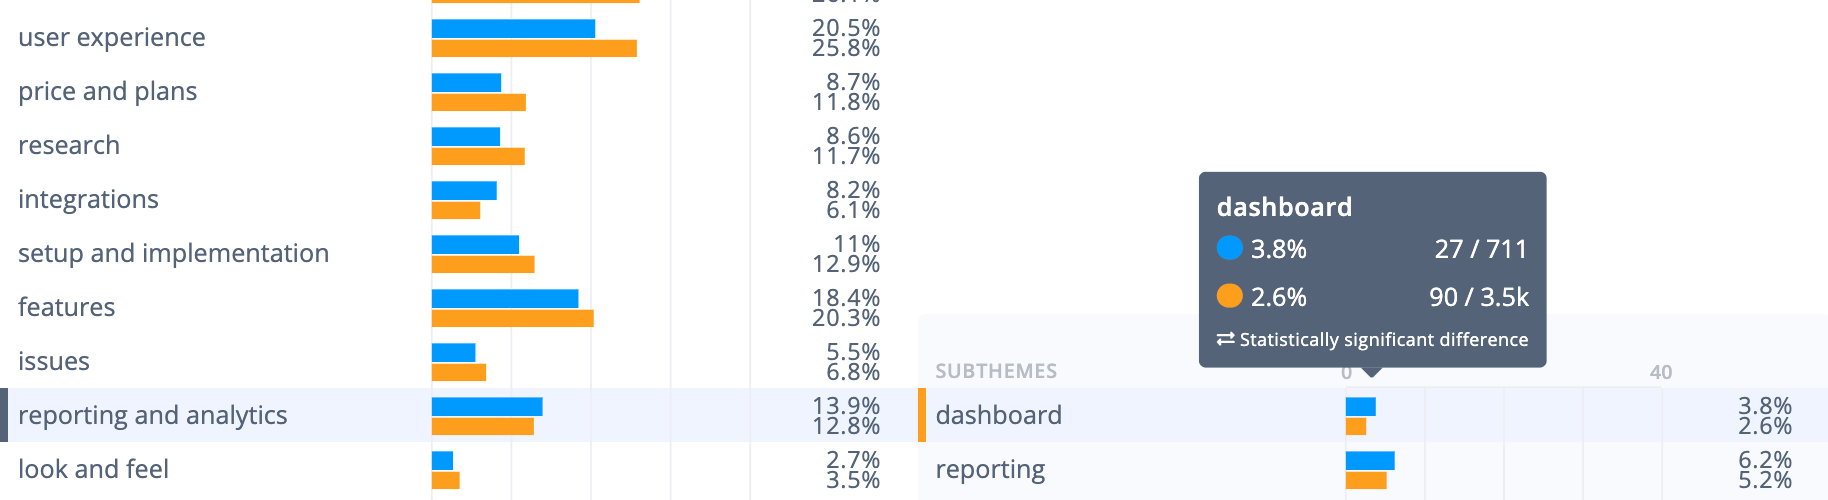 AskNicely survey tool weaknesses: Reporting and analytics mentioned more often than other survey tools